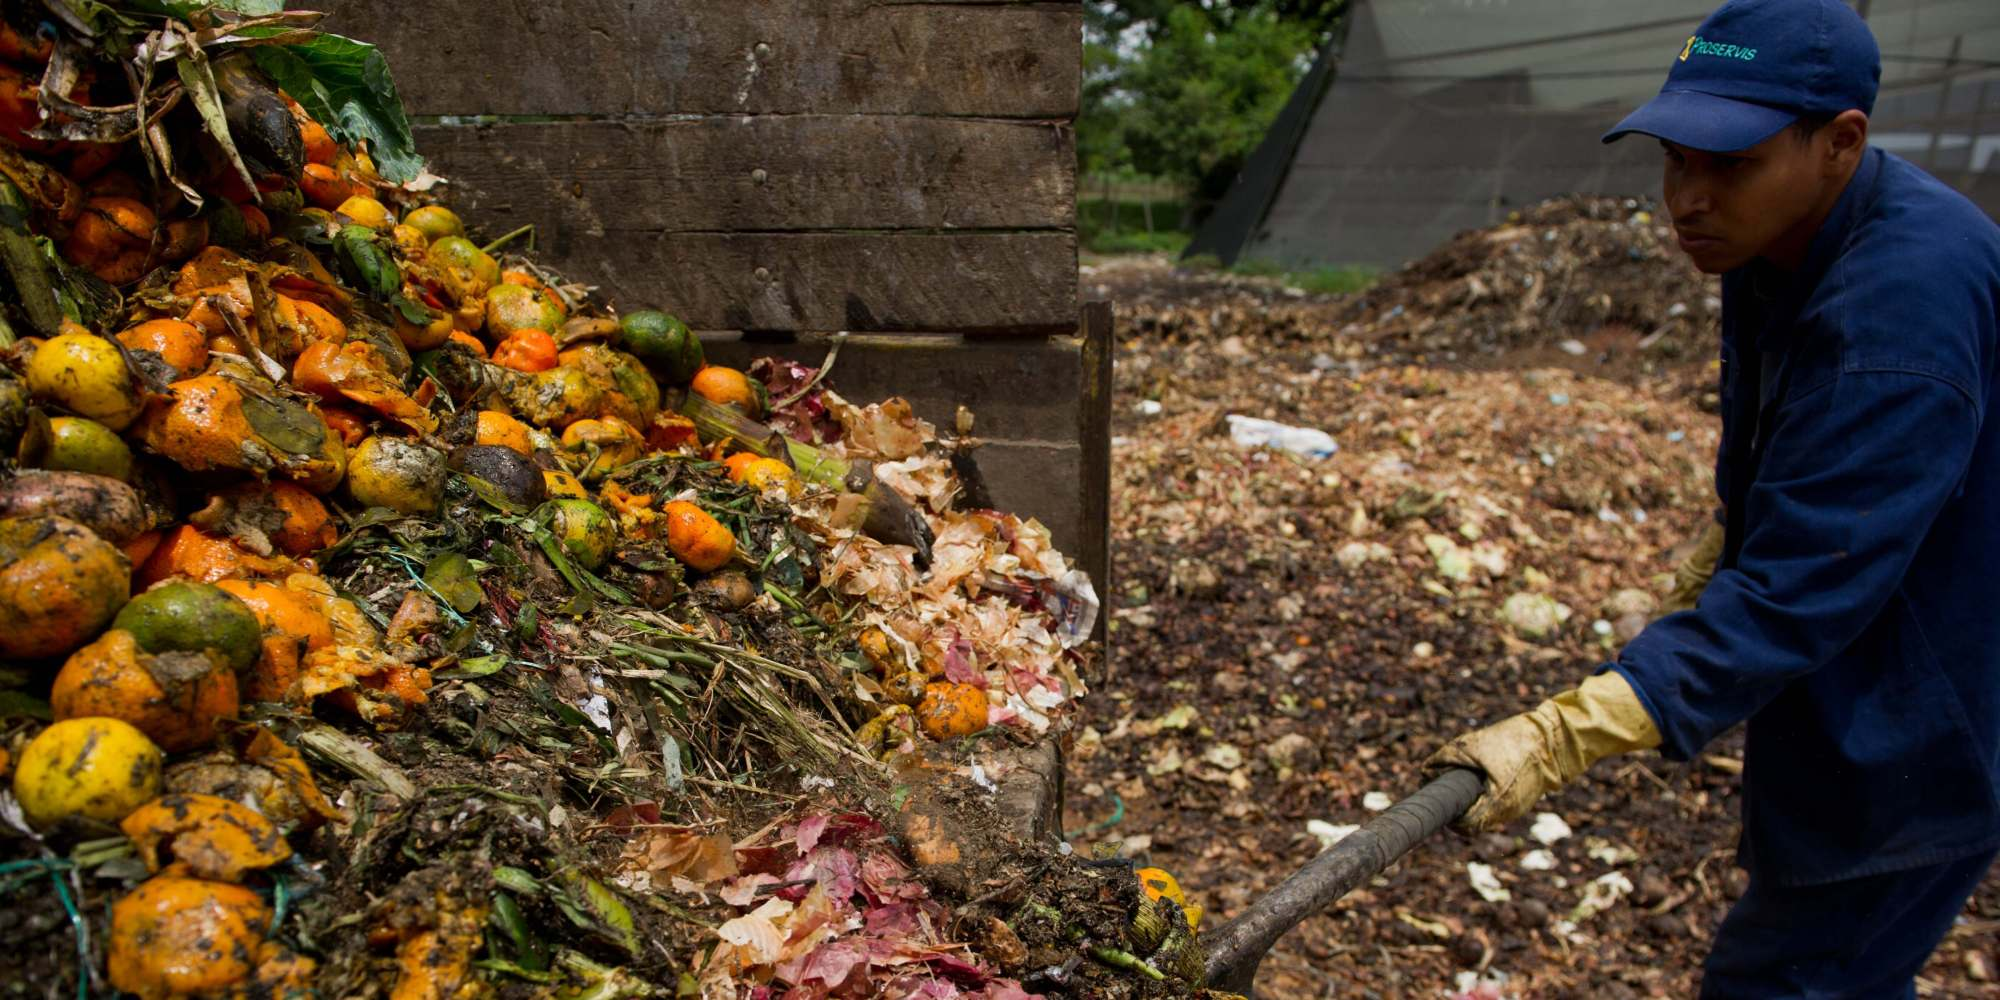 Is Food Waste An Issue For Canada